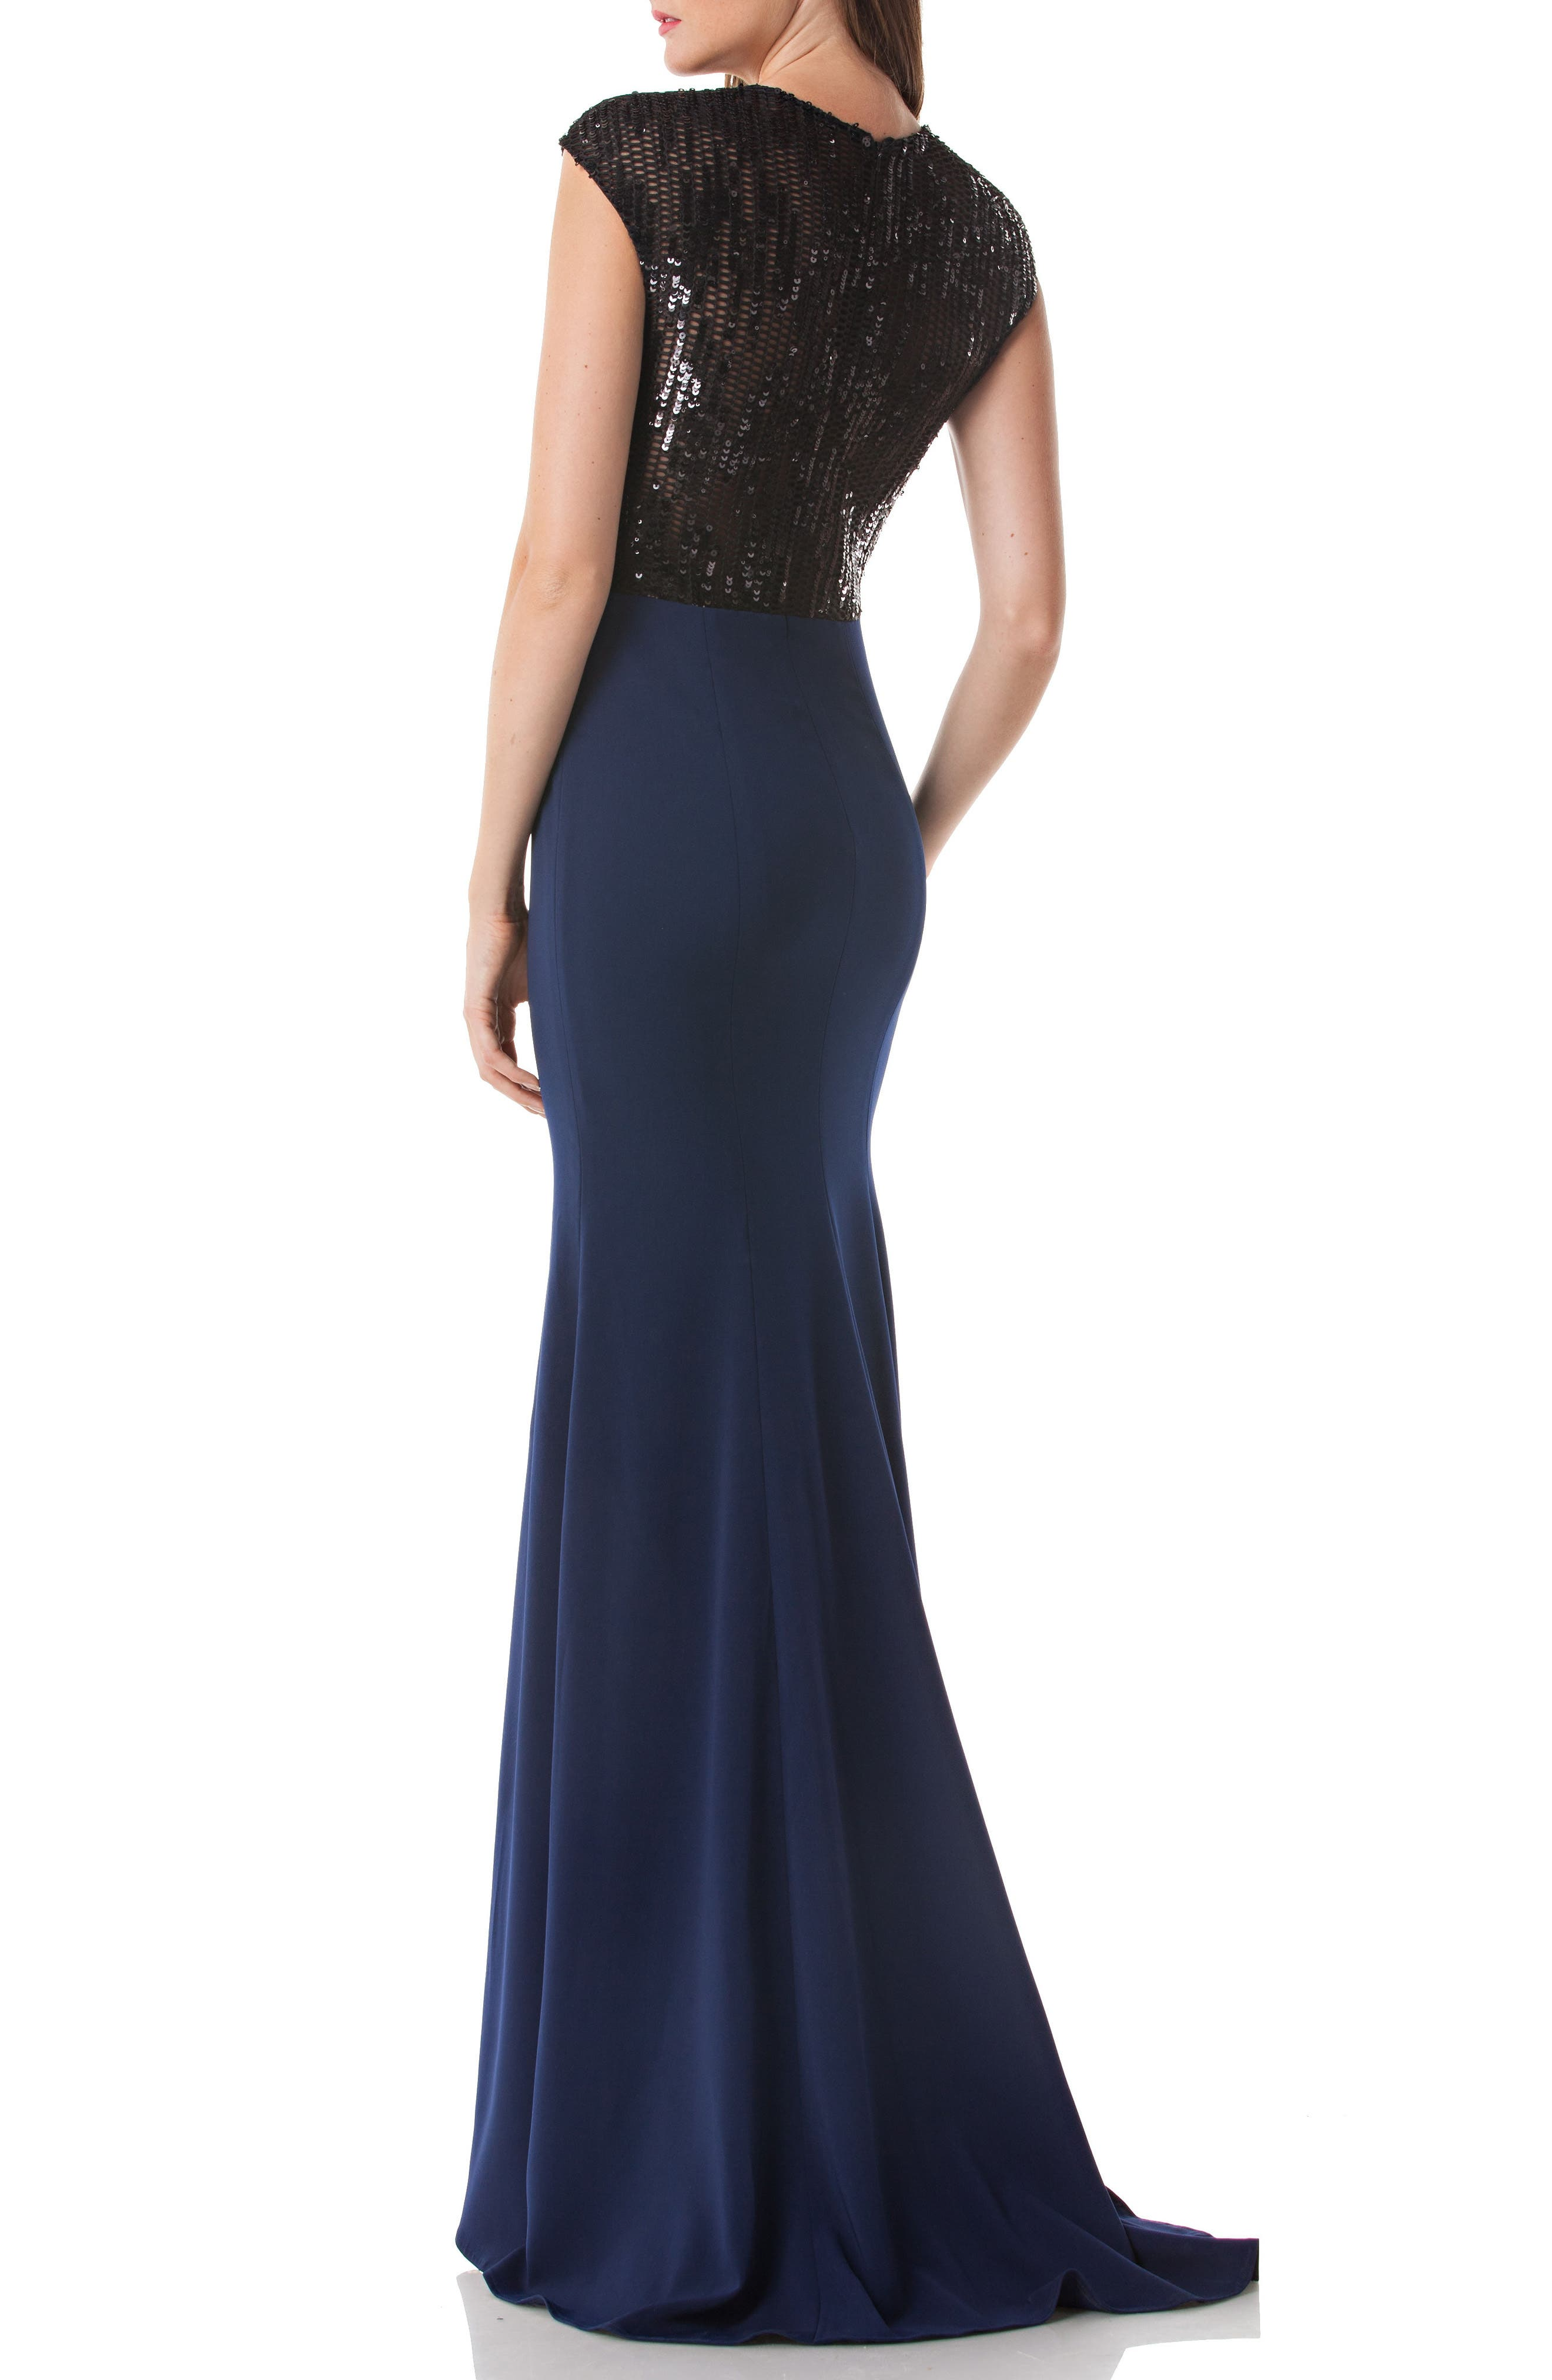 Sequin Trim Trumpet Gown,                             Alternate thumbnail 2, color,                             Navy/ Blk